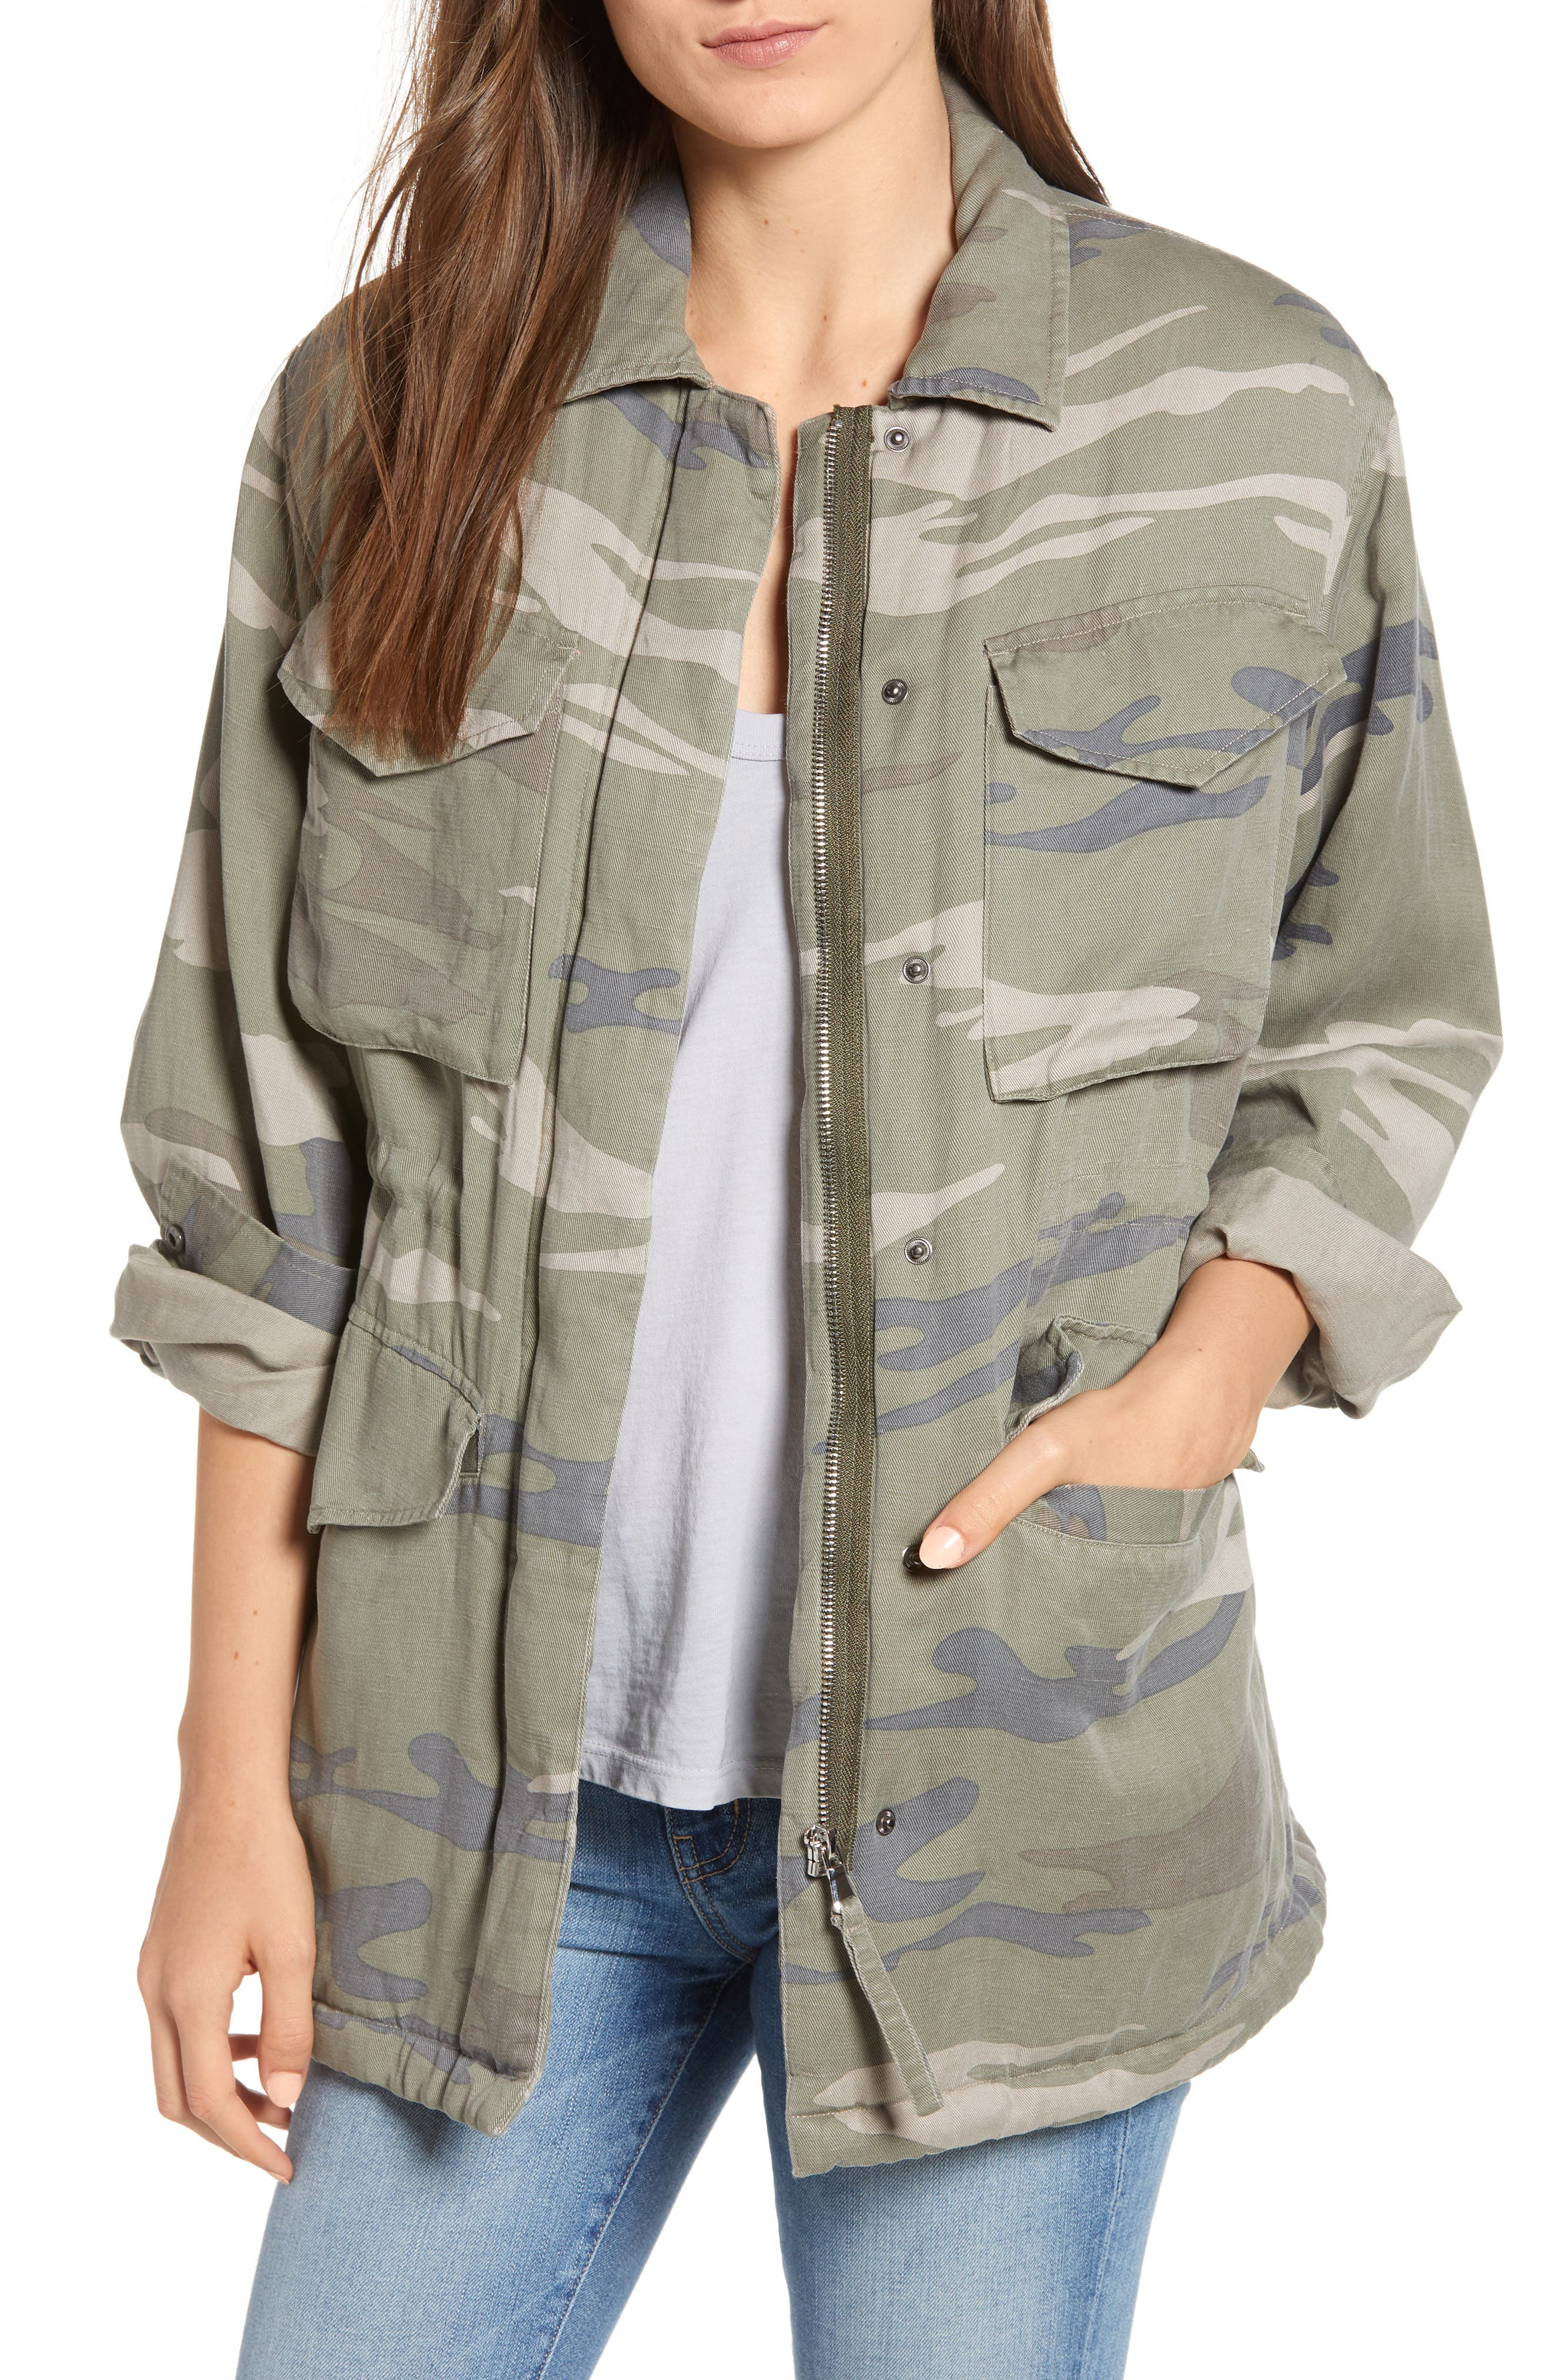 Whitaker Camo-Print Zip-Front Utility Jacket in Green